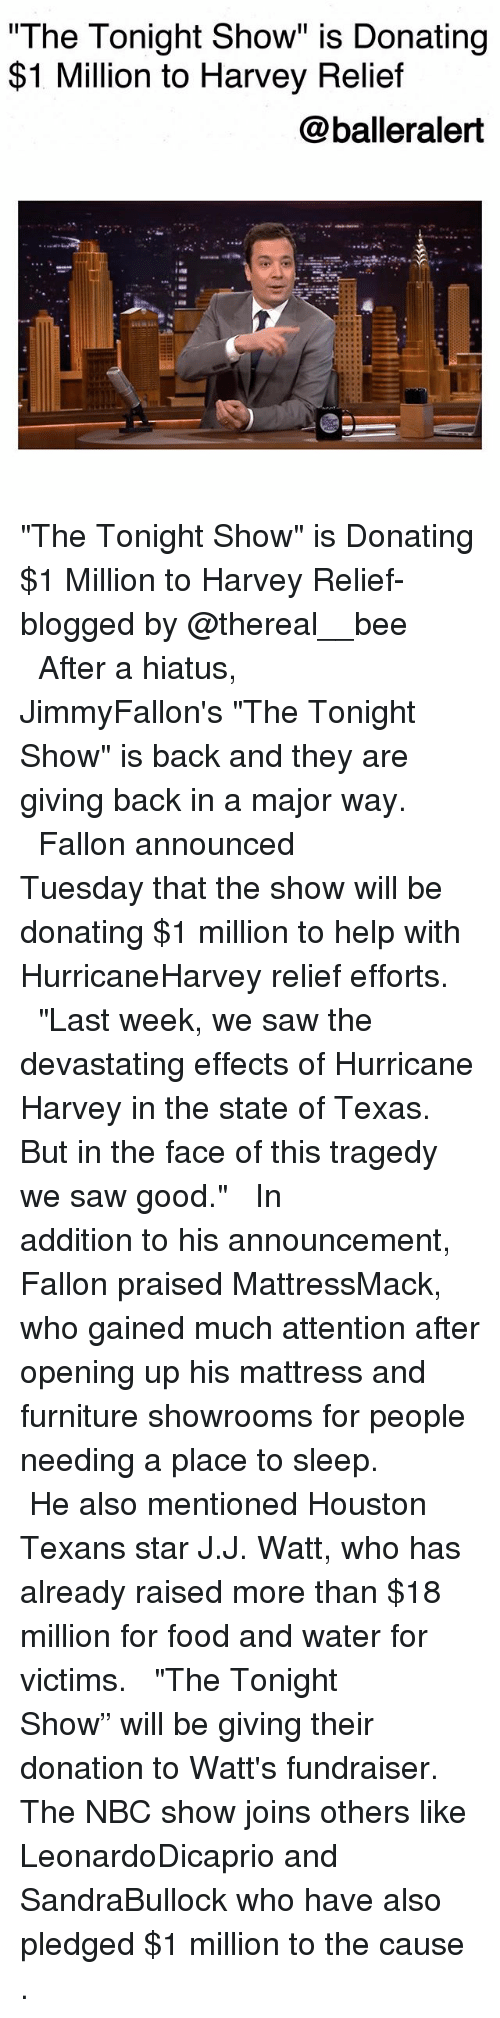 """Houston Texans: The Tonight Show"""" is Donating  $1 Million to Harvey Relief  @balleralert  s@汽. """"The Tonight Show"""" is Donating $1 Million to Harvey Relief-blogged by @thereal__bee ⠀⠀⠀⠀⠀⠀⠀⠀⠀ ⠀⠀ After a hiatus, JimmyFallon's """"The Tonight Show"""" is back and they are giving back in a major way. ⠀⠀⠀⠀⠀⠀⠀⠀⠀ ⠀⠀ Fallon announced Tuesday that the show will be donating $1 million to help with HurricaneHarvey relief efforts. ⠀⠀⠀⠀⠀⠀⠀⠀⠀ ⠀⠀ """"Last week, we saw the devastating effects of Hurricane Harvey in the state of Texas. But in the face of this tragedy we saw good."""" ⠀⠀⠀⠀⠀⠀⠀⠀⠀ ⠀⠀ In addition to his announcement, Fallon praised MattressMack, who gained much attention after opening up his mattress and furniture showrooms for people needing a place to sleep. ⠀⠀⠀⠀⠀⠀⠀⠀⠀ ⠀⠀ He also mentioned Houston Texans star J.J. Watt, who has already raised more than $18 million for food and water for victims. ⠀⠀⠀⠀⠀⠀⠀⠀⠀ ⠀⠀ """"The Tonight Show"""" will be giving their donation to Watt's fundraiser. The NBC show joins others like LeonardoDicaprio and SandraBullock who have also pledged $1 million to the cause ."""